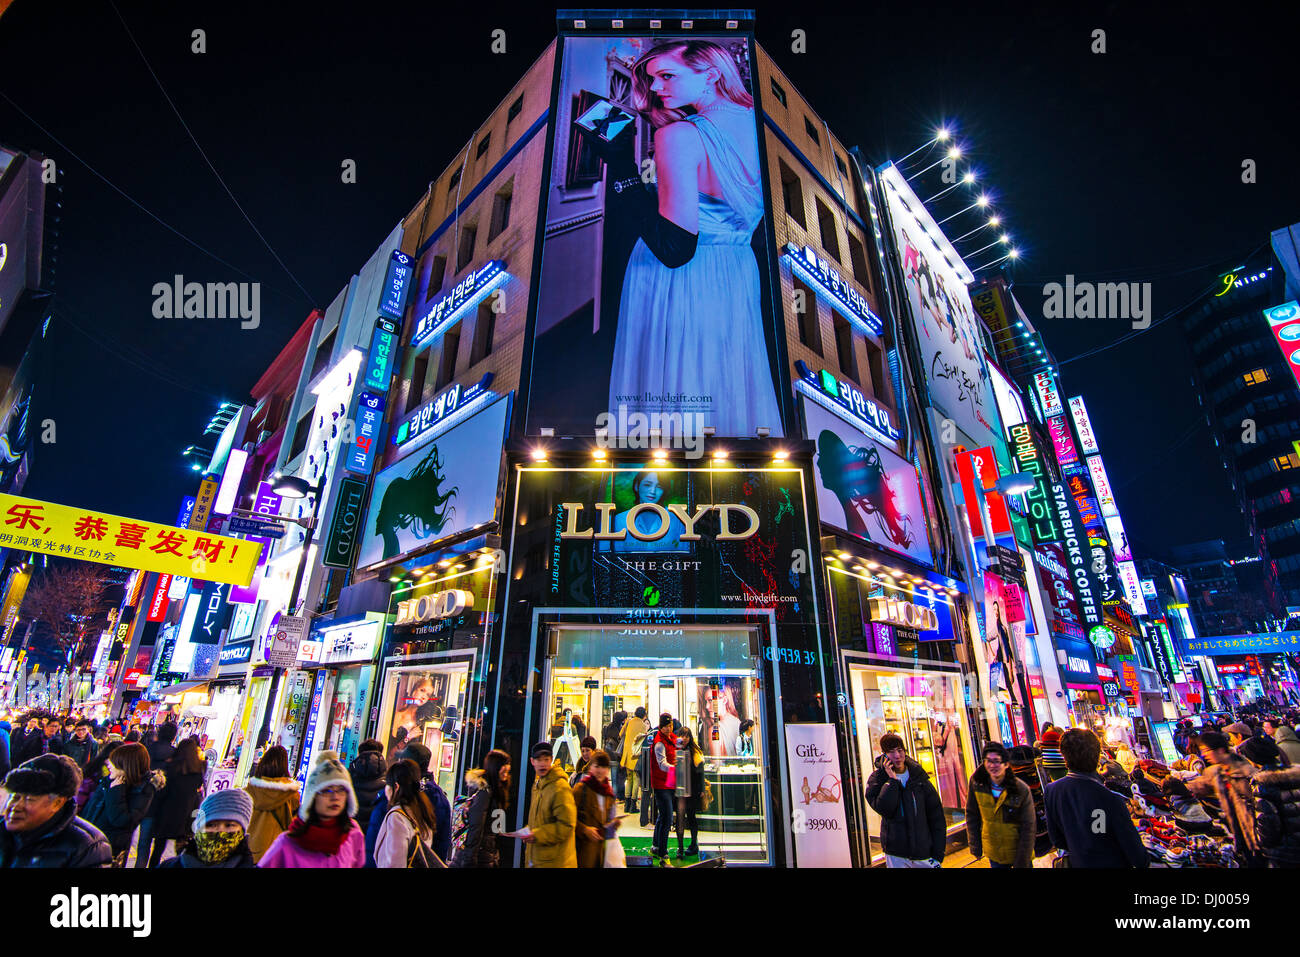 Myeong-dong district of Seoul, South Korea. - Stock Image